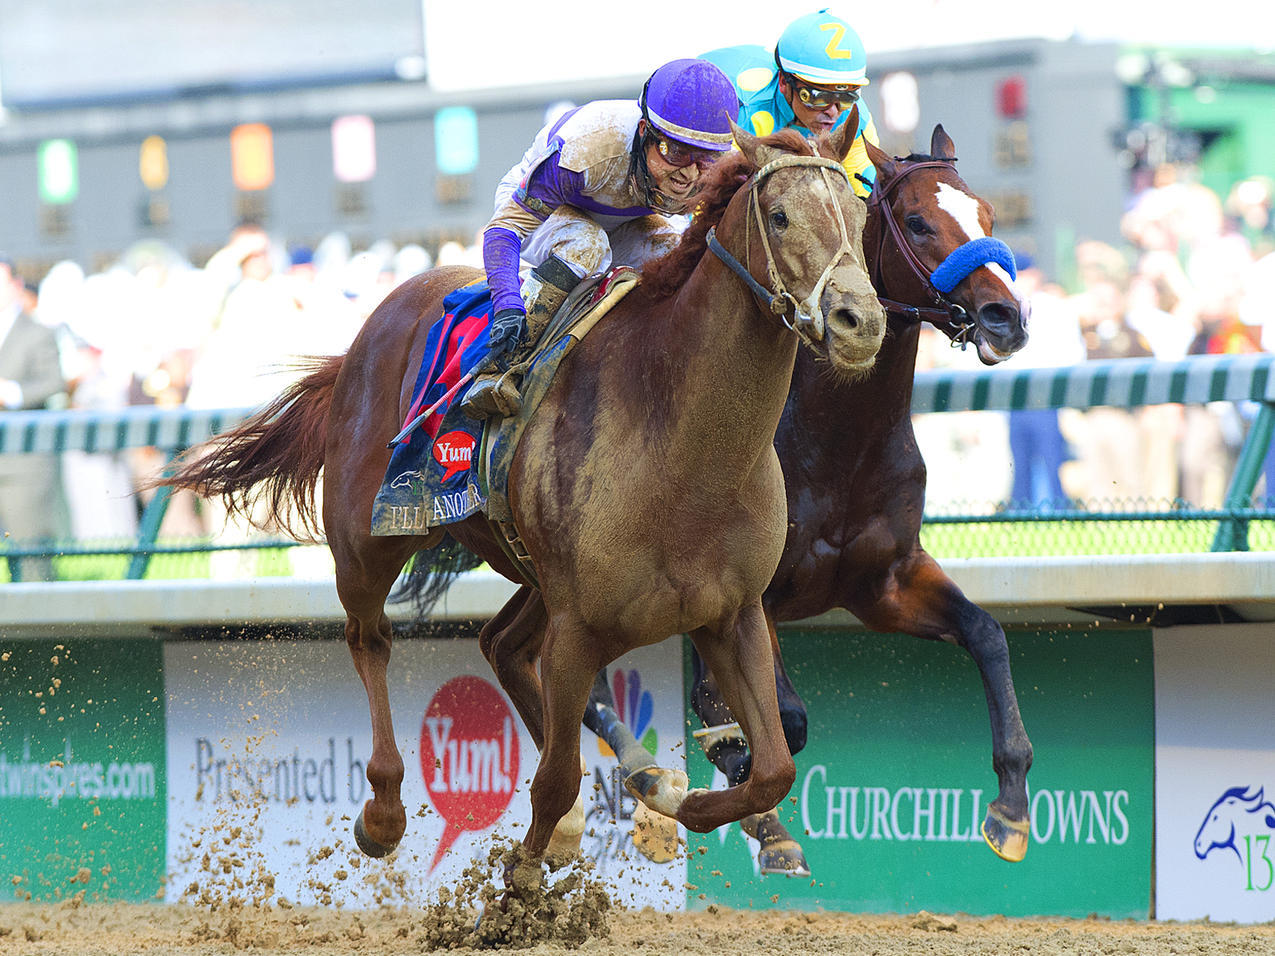 I'll Have Another outruns Bodemeister to eek out a victory at Saturday's 138th running of the Kentucky Derby at Churchill Downs in Lousiville. (Bill Frakes/SI) GALLERIES: The Race | The Hats | The Favorites' Fates